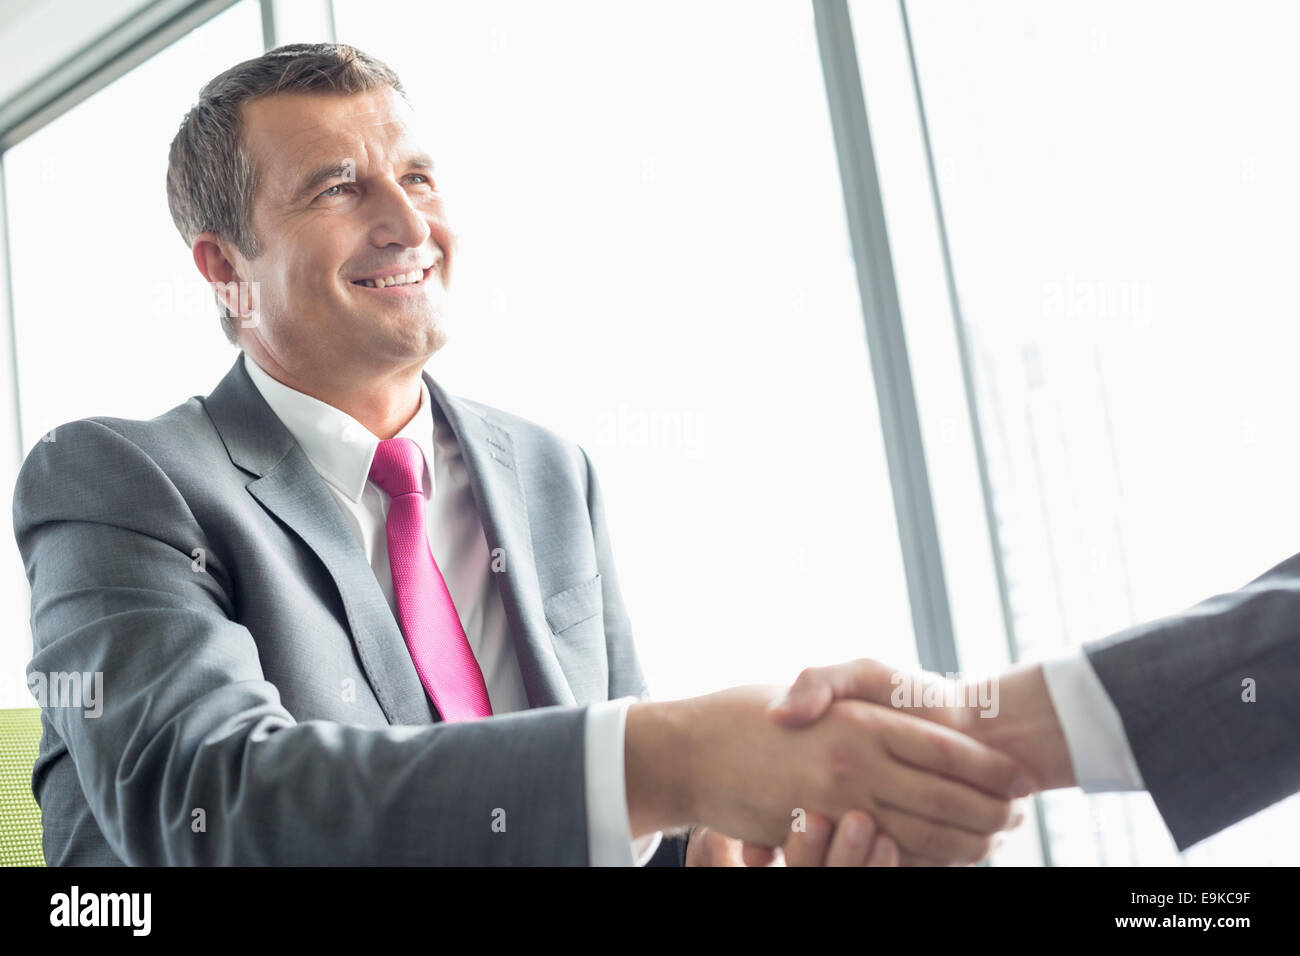 Smiling mature businessman shaking hands with partner in office Photo Stock